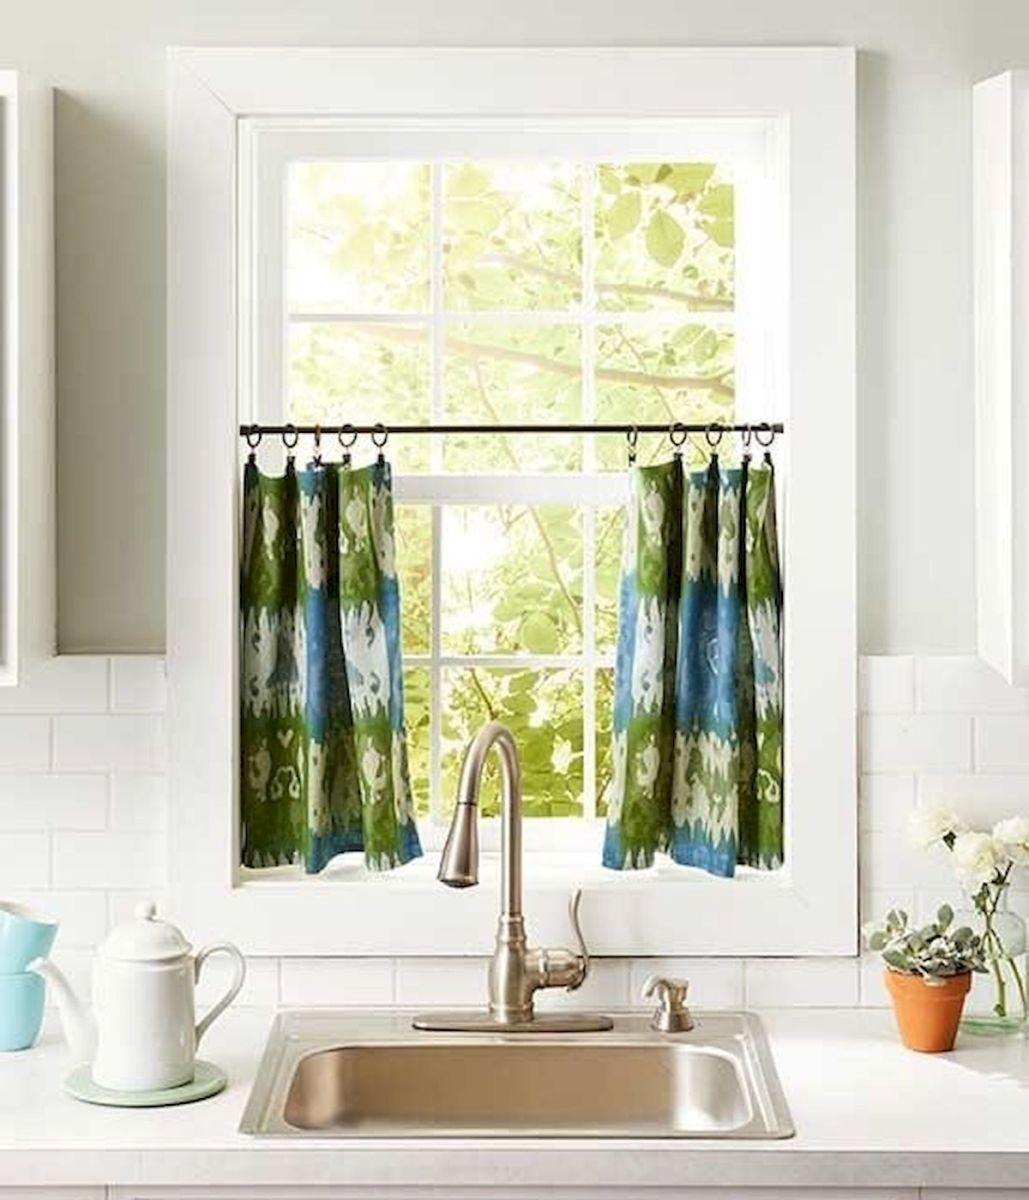 65 Adorable Window Curtains Design Ideas And Decor (27)